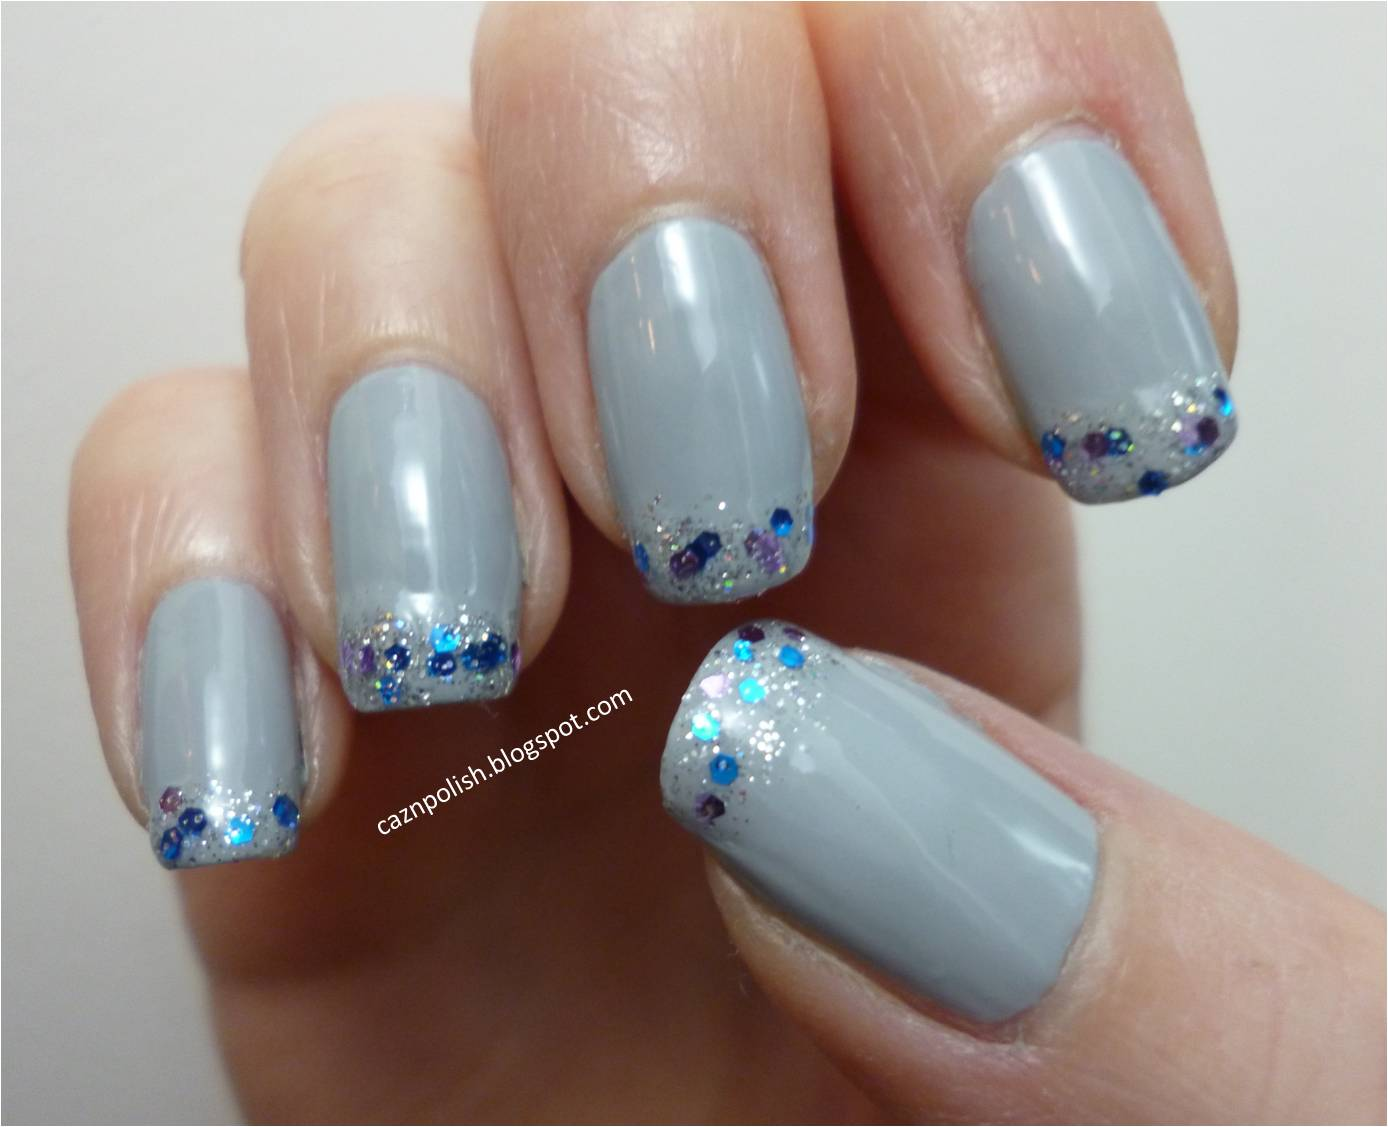 caz 'n' polish | Dreamy Glitter Tip Nails